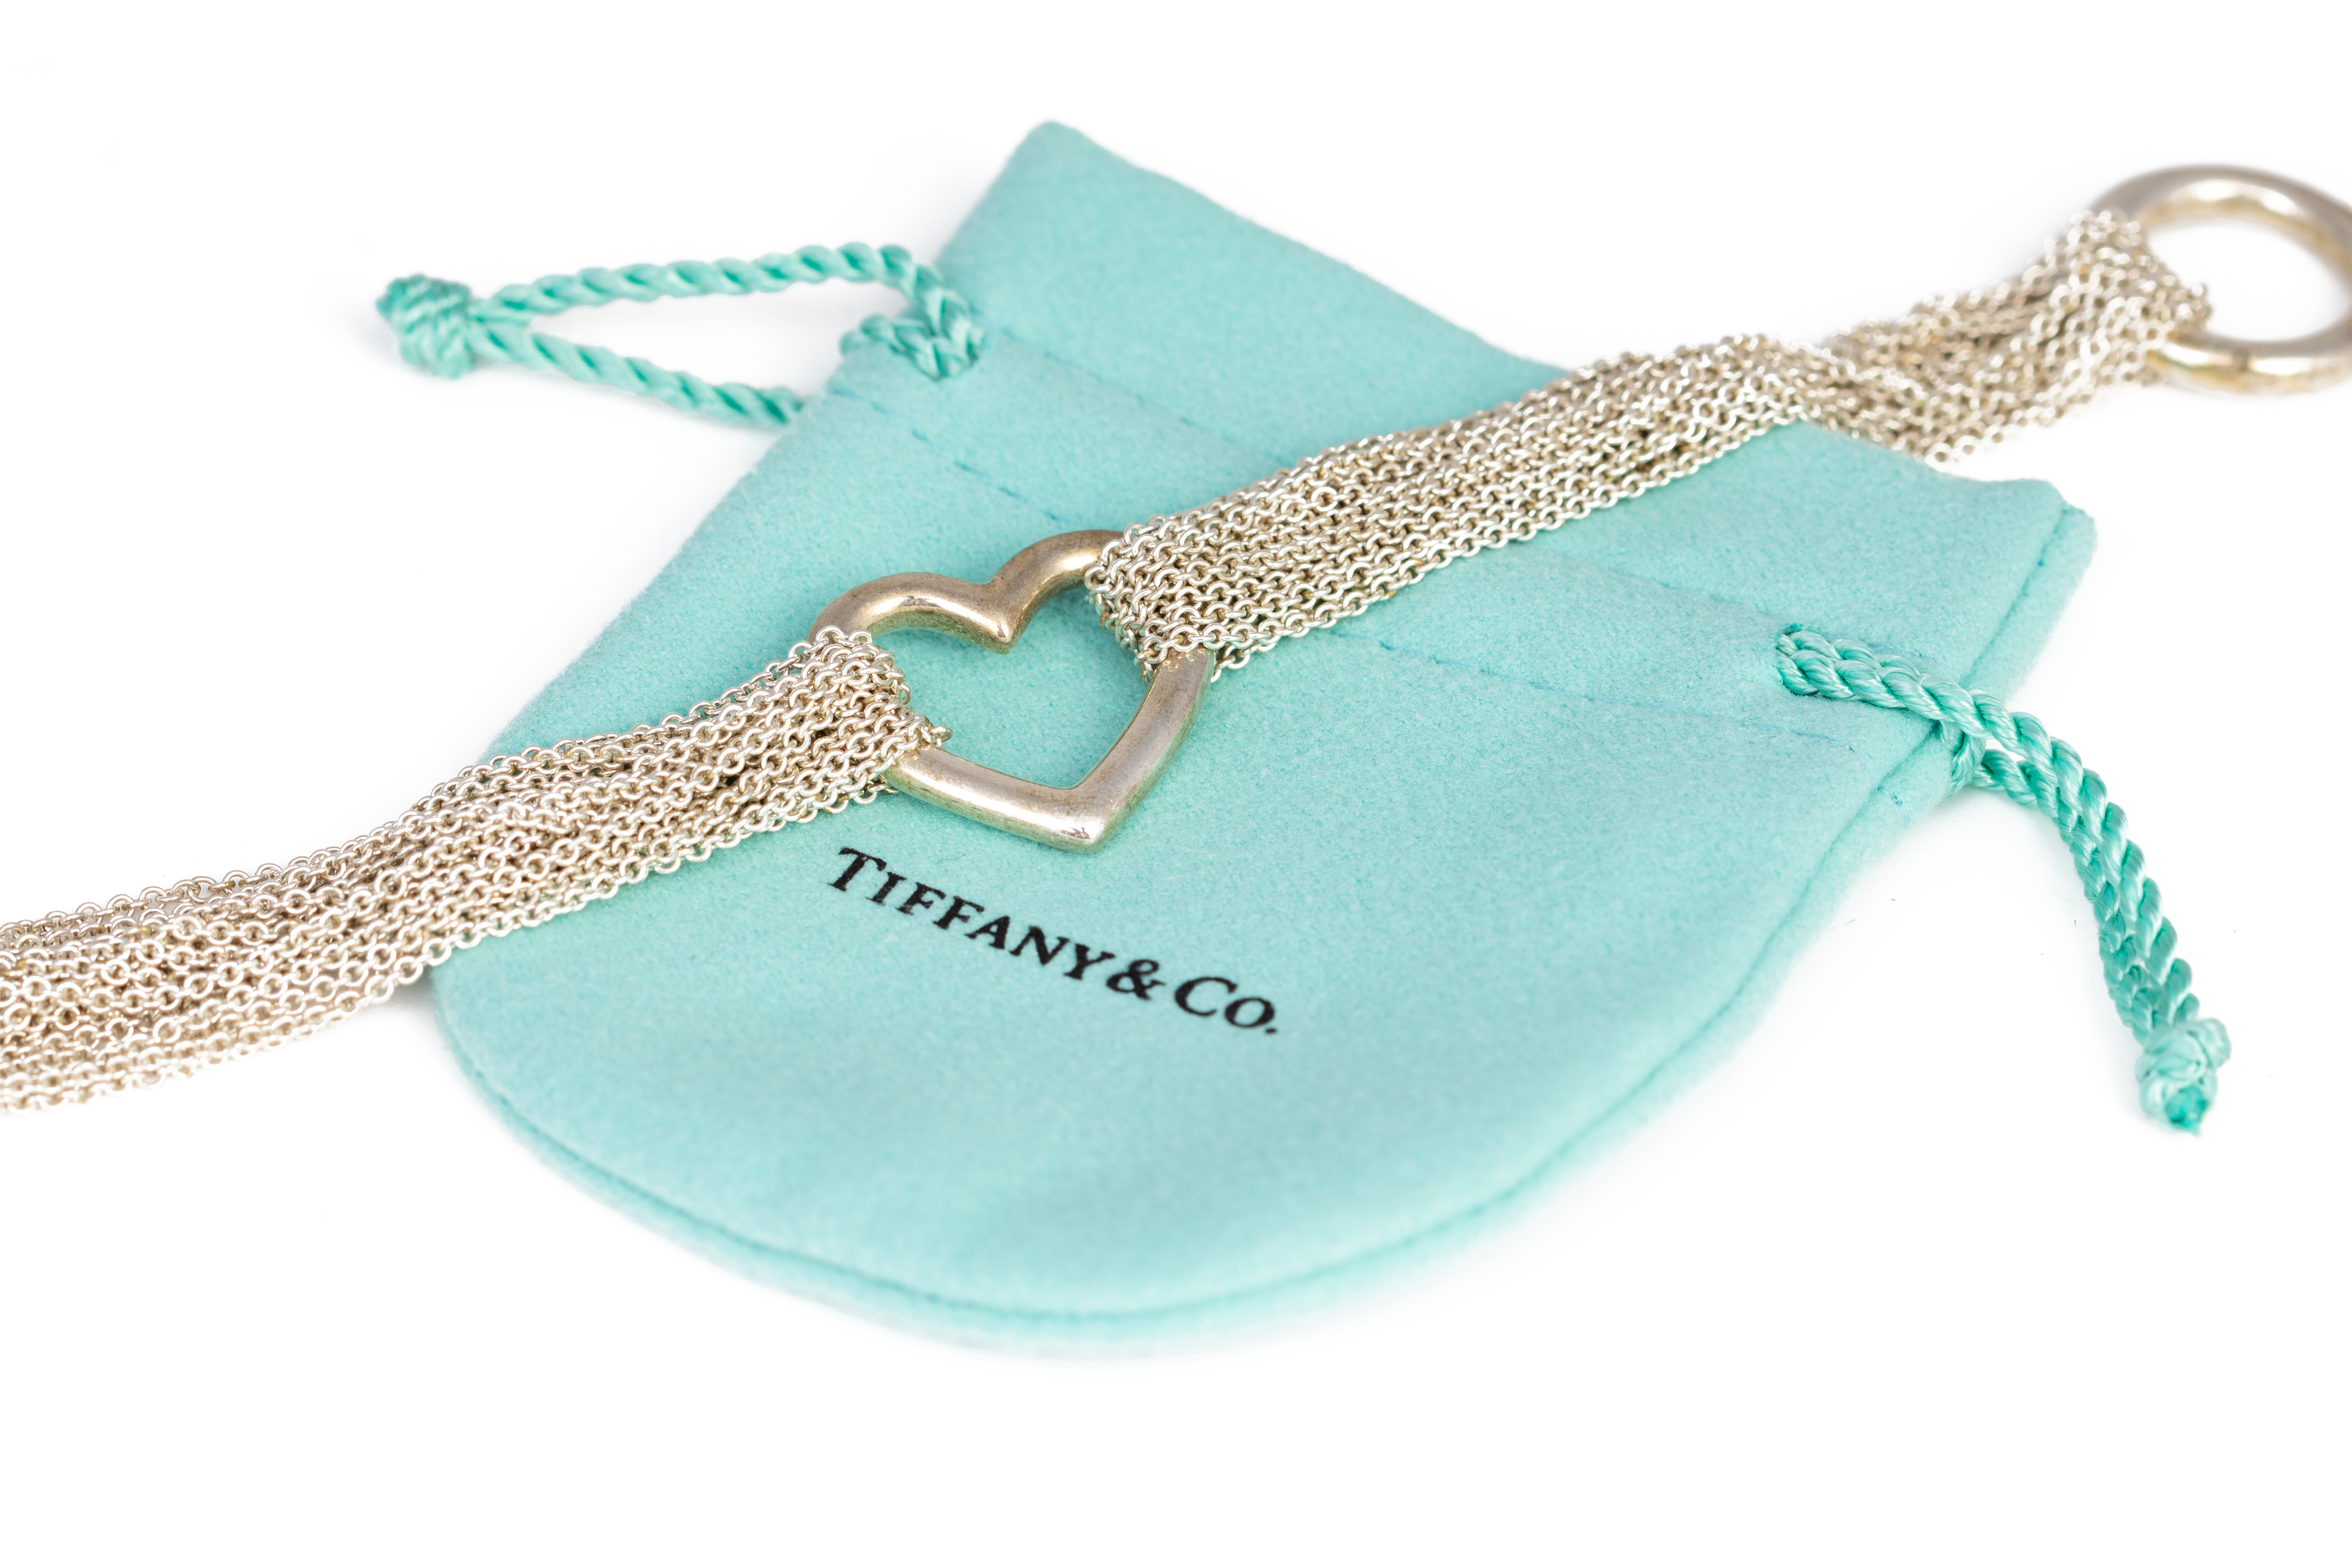 A TIFFANY & CO. SILVER TEN ROW CHAIN HEART TOGGLE BRACELET - Image 4 of 4